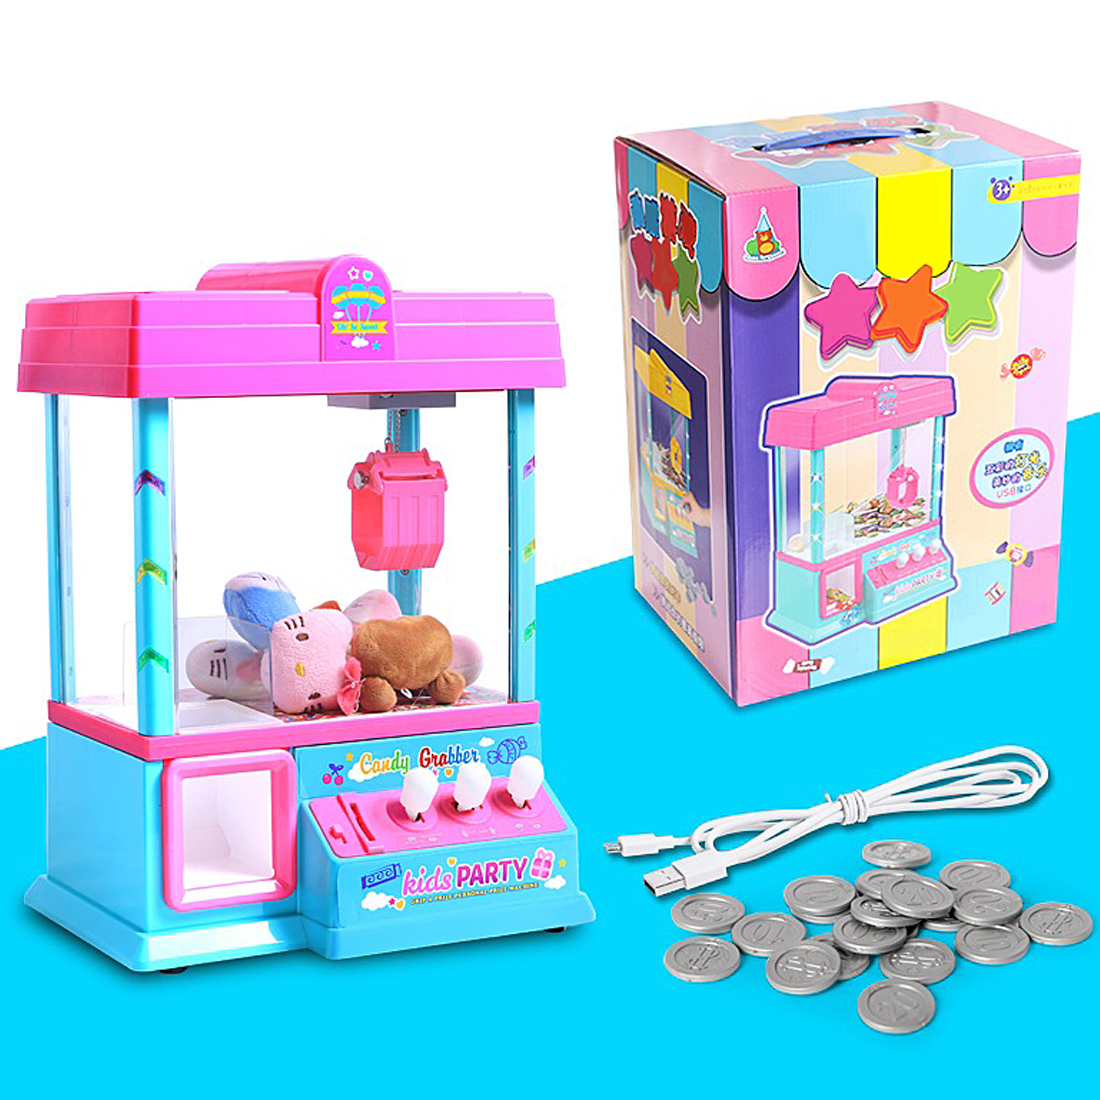 Big Size Coin Operated High Simulation USB Mini Slot Machine Electronic Claw Toy Machine with Music Light Party Toys good quality coin operated tabletop gumball vending machine desktop capsule vending cabinet toy penny in the slot coin vendor